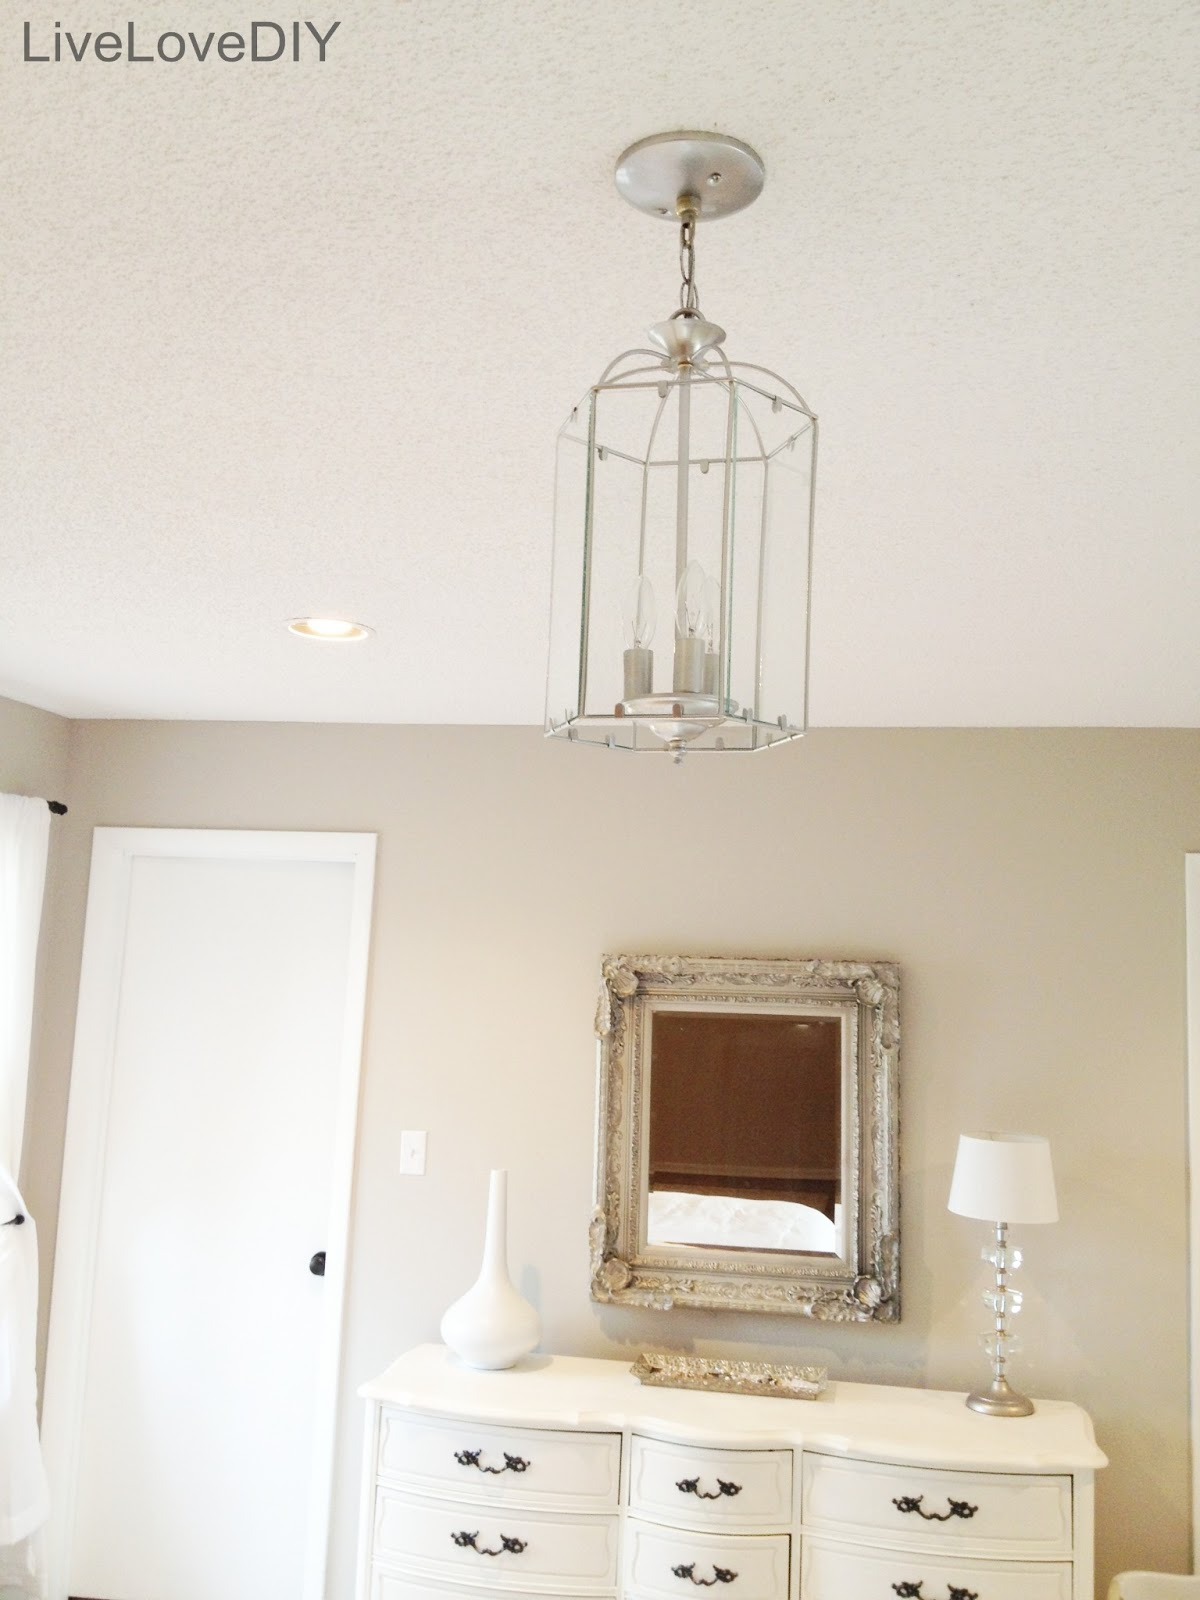 LiveLoveDIY How To Update Old Brass Fixtures